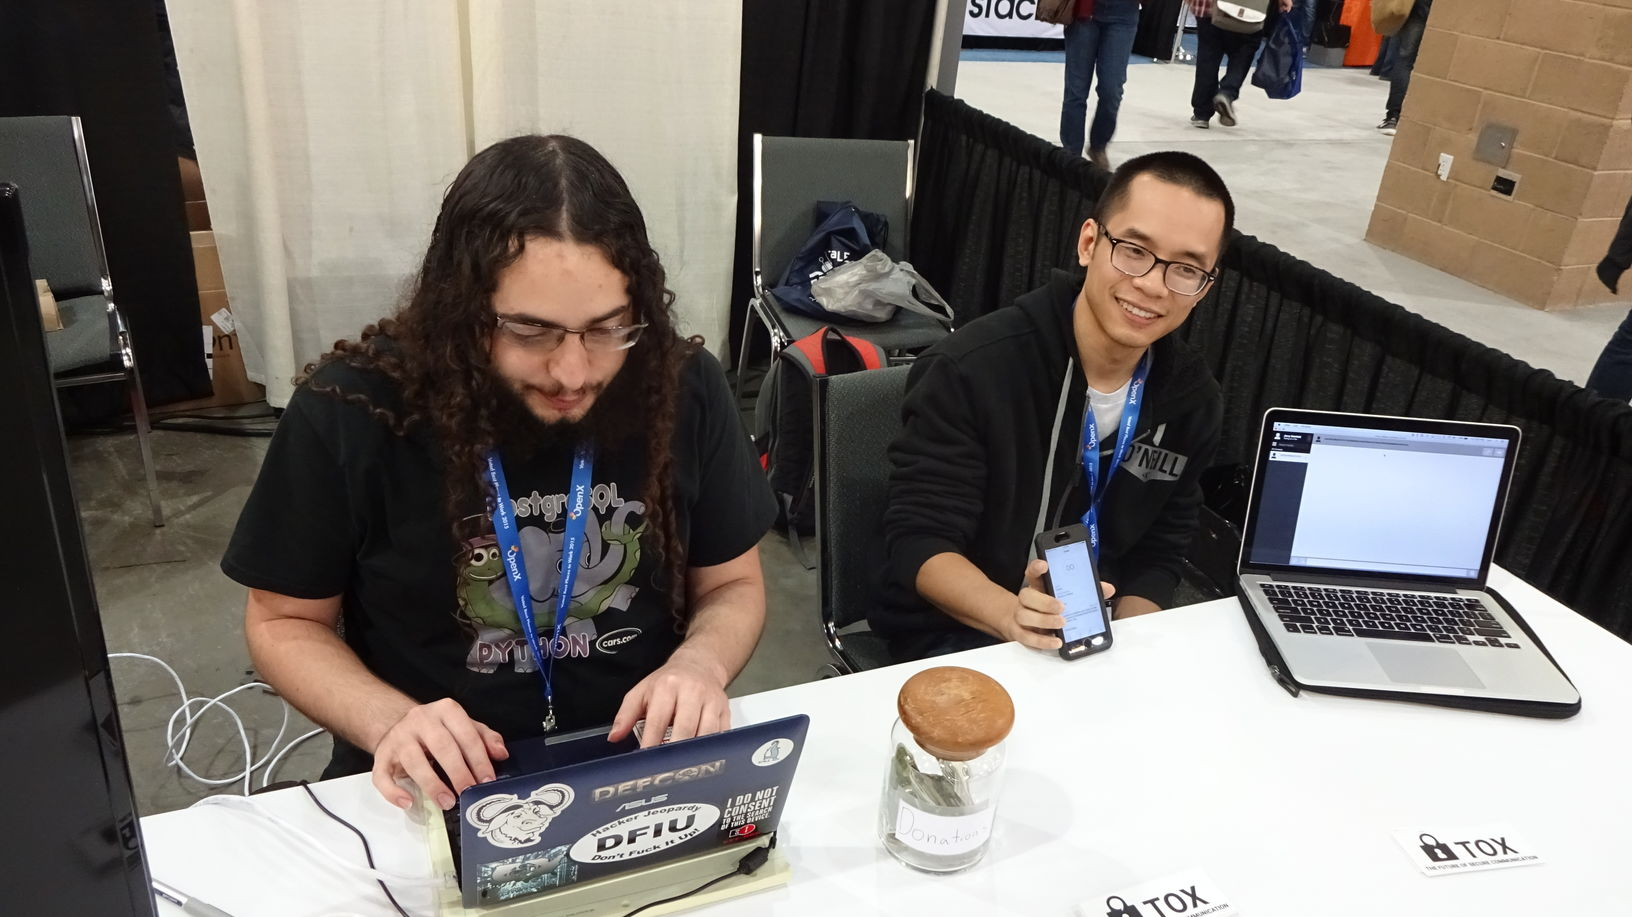 Chuong Vu (right) and myself (left) getting ready to show off some Tox clients.